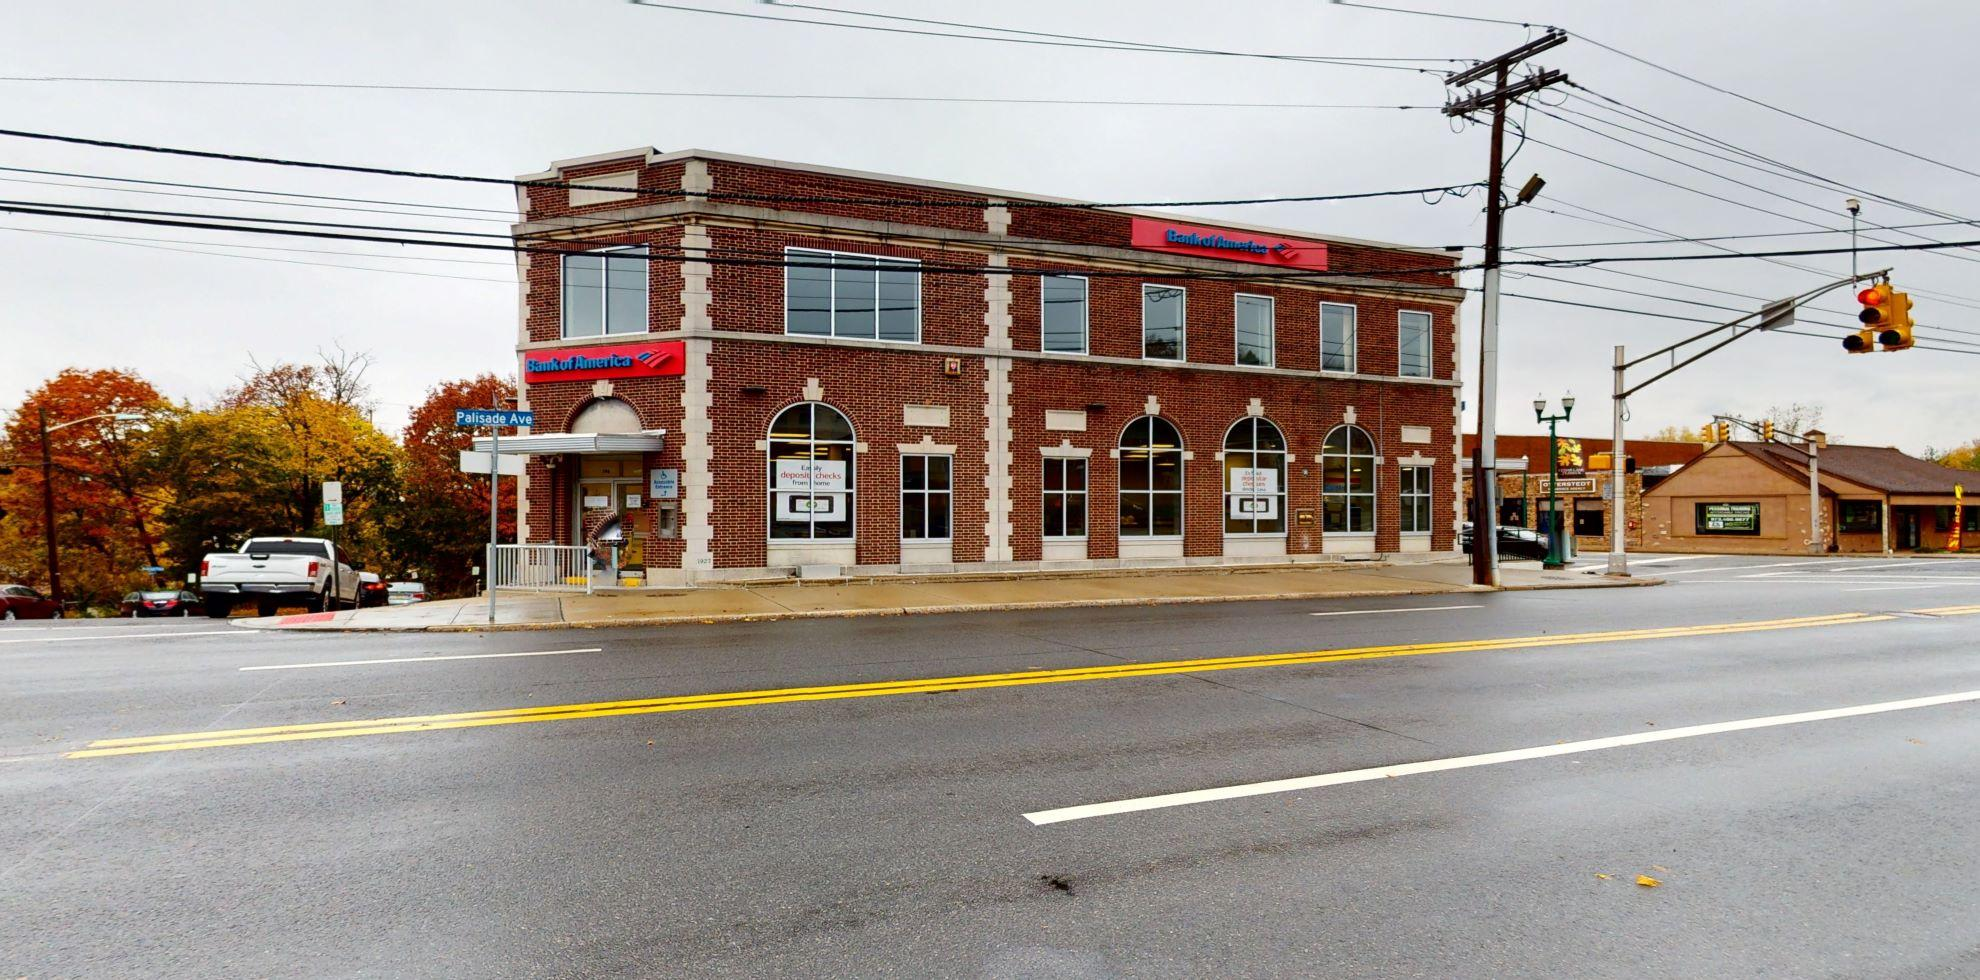 Bank of America financial center with walk-up ATM | 790 Palisade Ave, Teaneck, NJ 07666